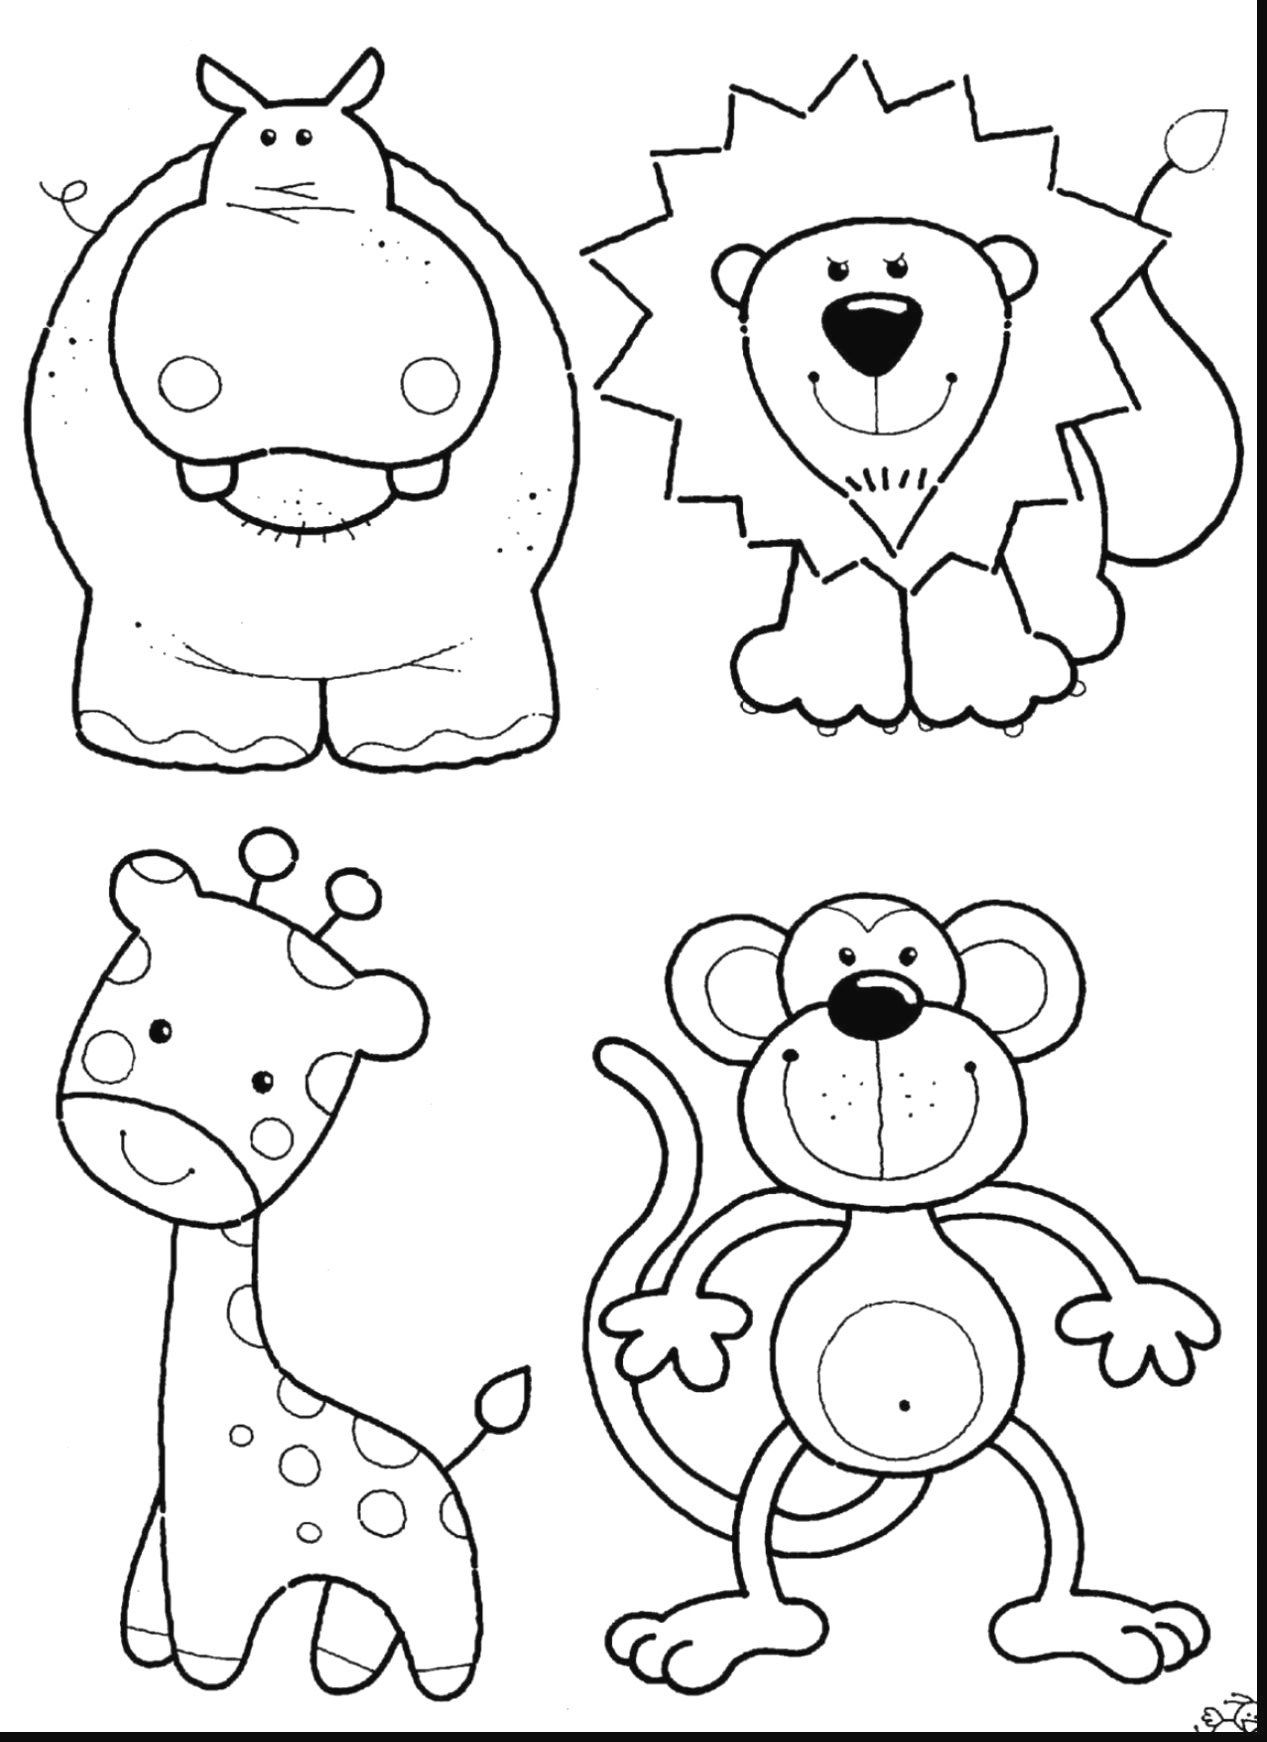 Zoo Animals Coloring Pages Zoo Animal Coloring Pages To Print